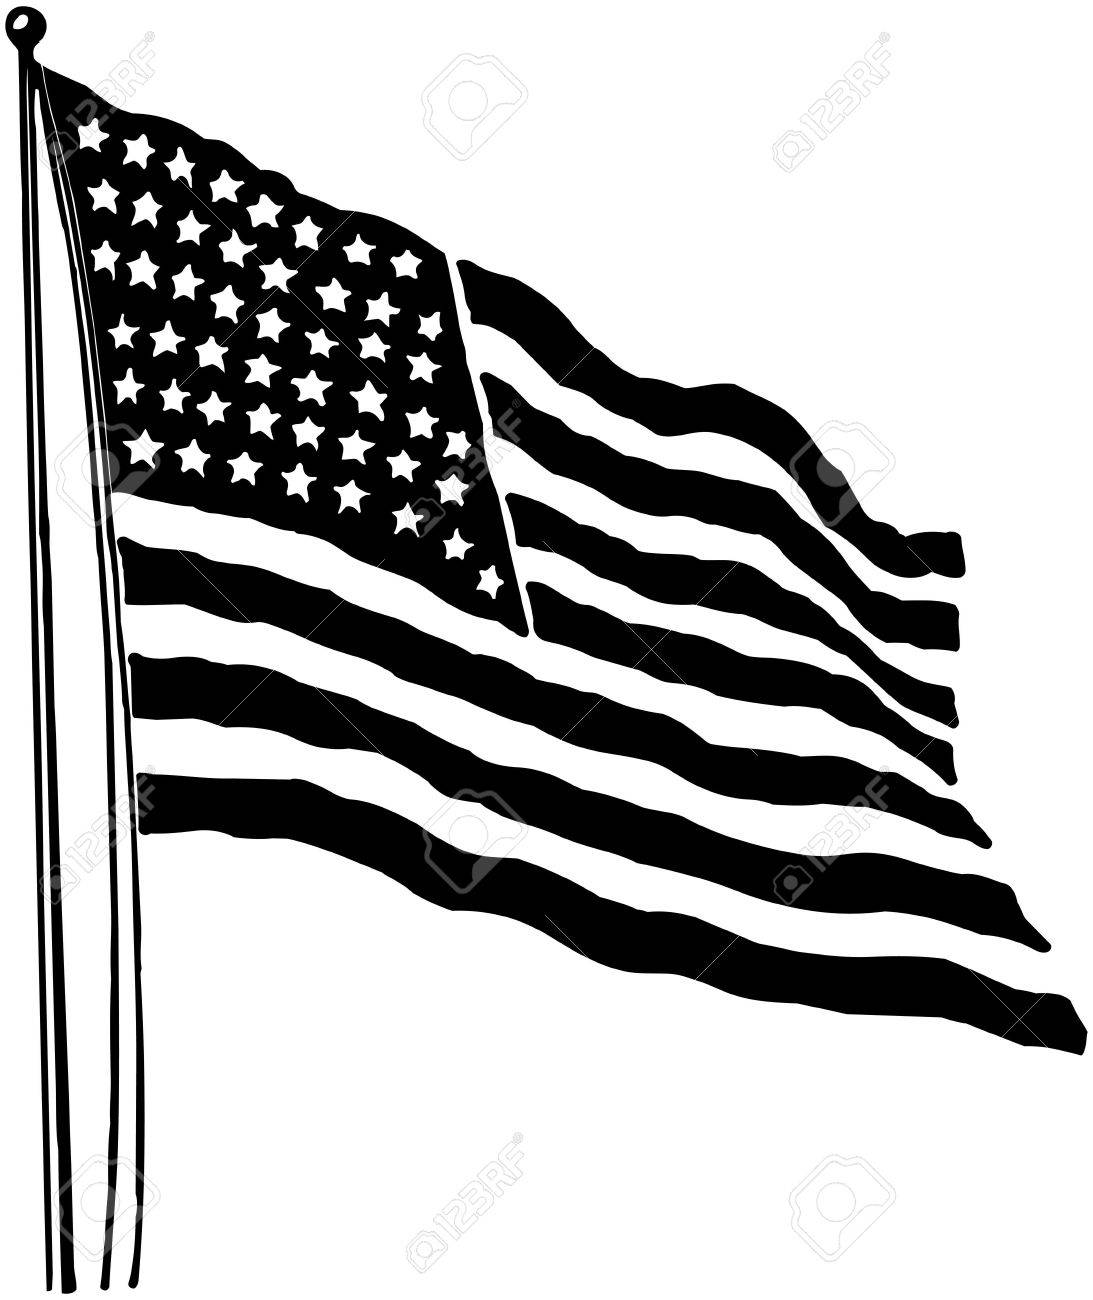 hight resolution of american flag stock vector 28332160